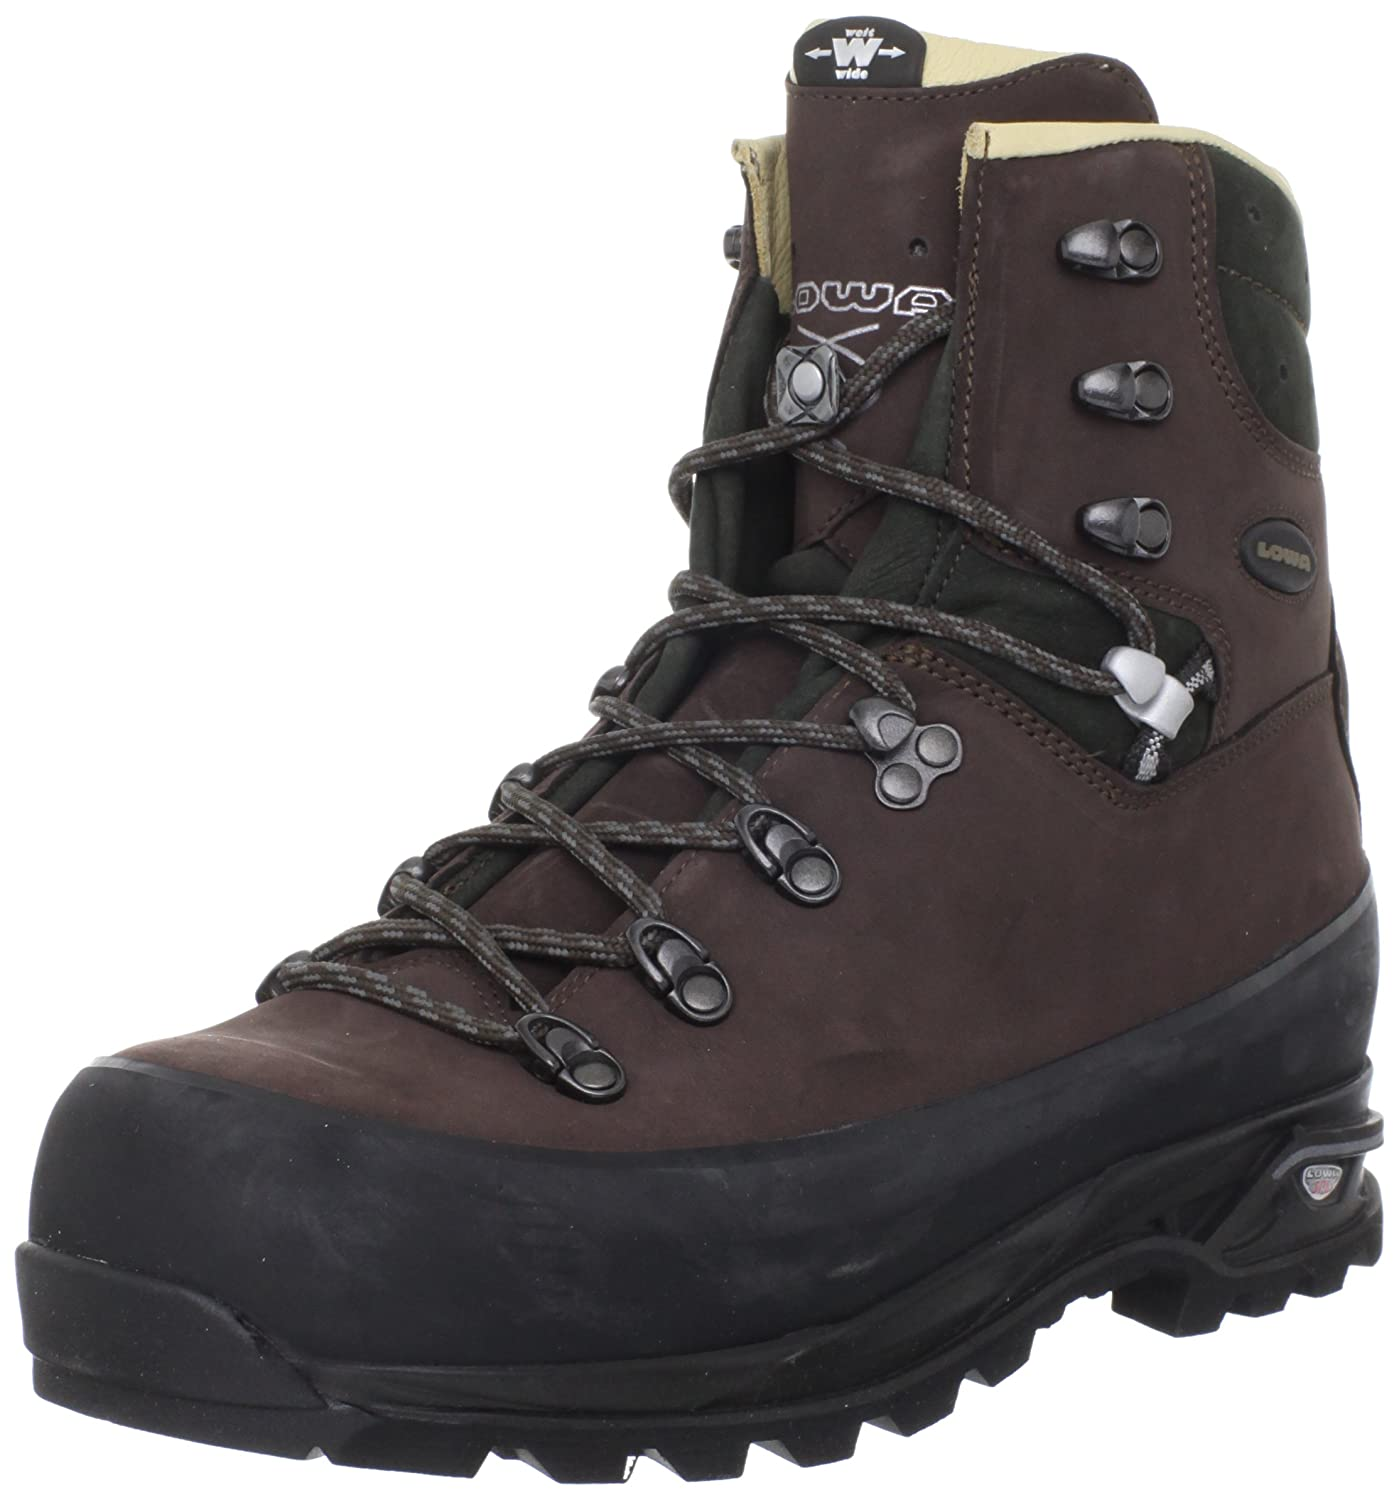 f723306e8a1 Lowa Men's Baffin Pro Backpacking Boot,Chestnut/Anthracite,10 M US ...